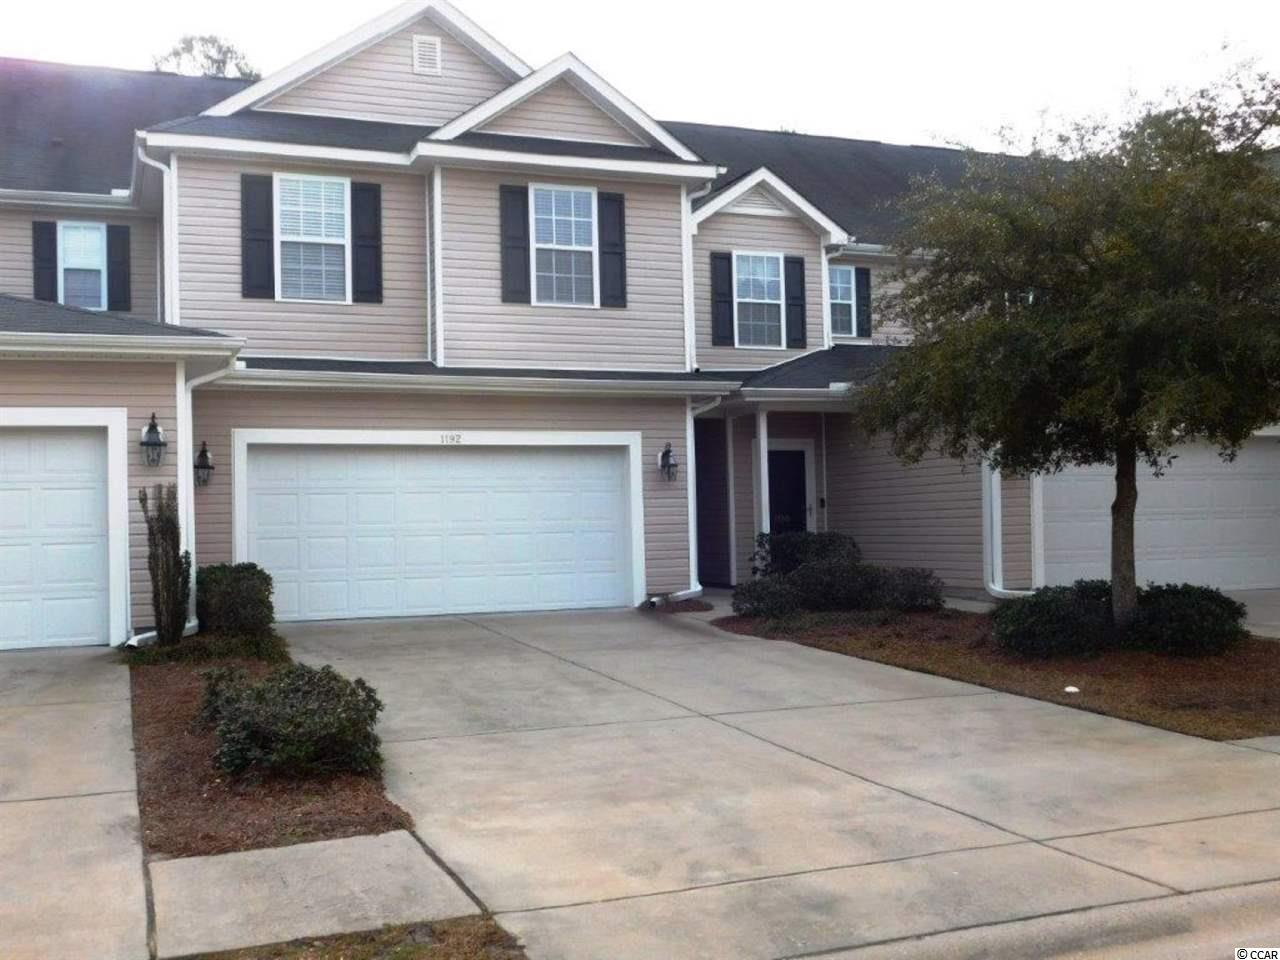 Gorgeous 3 BR/ 2.5 BA townhouse with 2 Car Garage located in Fairway @ Wild Wing in Carolina Forest area. Townhouse looks new- just freshly painted interior, new wood laminated floors throughout entry, living area, stairwell, and in master bedroom and both other bedrooms. Walk into this beauty and be greeted by soaring ceilings, a large coat closet, windows providing a bright, light atmosphere throughout the home. As you walk into this open. airy floor plan you will find a window and 2 windows high on wall facing back for sunlight to stream thru. Family room opens totally to kitchen and breakfast area with sliders opening to a concrete patio and a private treed back yard. Kitchen comes complete with a dining table & four chairs and a breakfast bar perfect for 4 bar stools. Double door, large pantry, side by side refrigerator, smooth top range, microwave, dishwasher and garbage disposal, plenty of cabinets and counter space. Great home for family, friends and entertaining. On bottom level there is a half bath for your & guests convenience. A utility room complete with washer & dryer, and door from garage giving direct access to kitchen for ease. Large garage has shelves for additional storage. Venture upstairs and turn right and enter a large master with matching new wood laminate floors, walk-in closet, linen closet. Master bath has double sinks, tub/ shower. There are 2 other large bedrooms with wood laminate flooring and a full bath and linen closet for convenience. Patio and backyard are great for out door living. Trees provide a wonderful back drop for peace and quiet. See this home and you'll love it and comes with a portable generator (Generac) for those times its needed. Truly townhome has been a second home with meticulous care. See it you'll want it and location is spectacular. Fairway community has a great community pool and is close in proximity to Horry Georgetown Tech, Conway Hospital, golf, restaurants and all the beach has to offer.